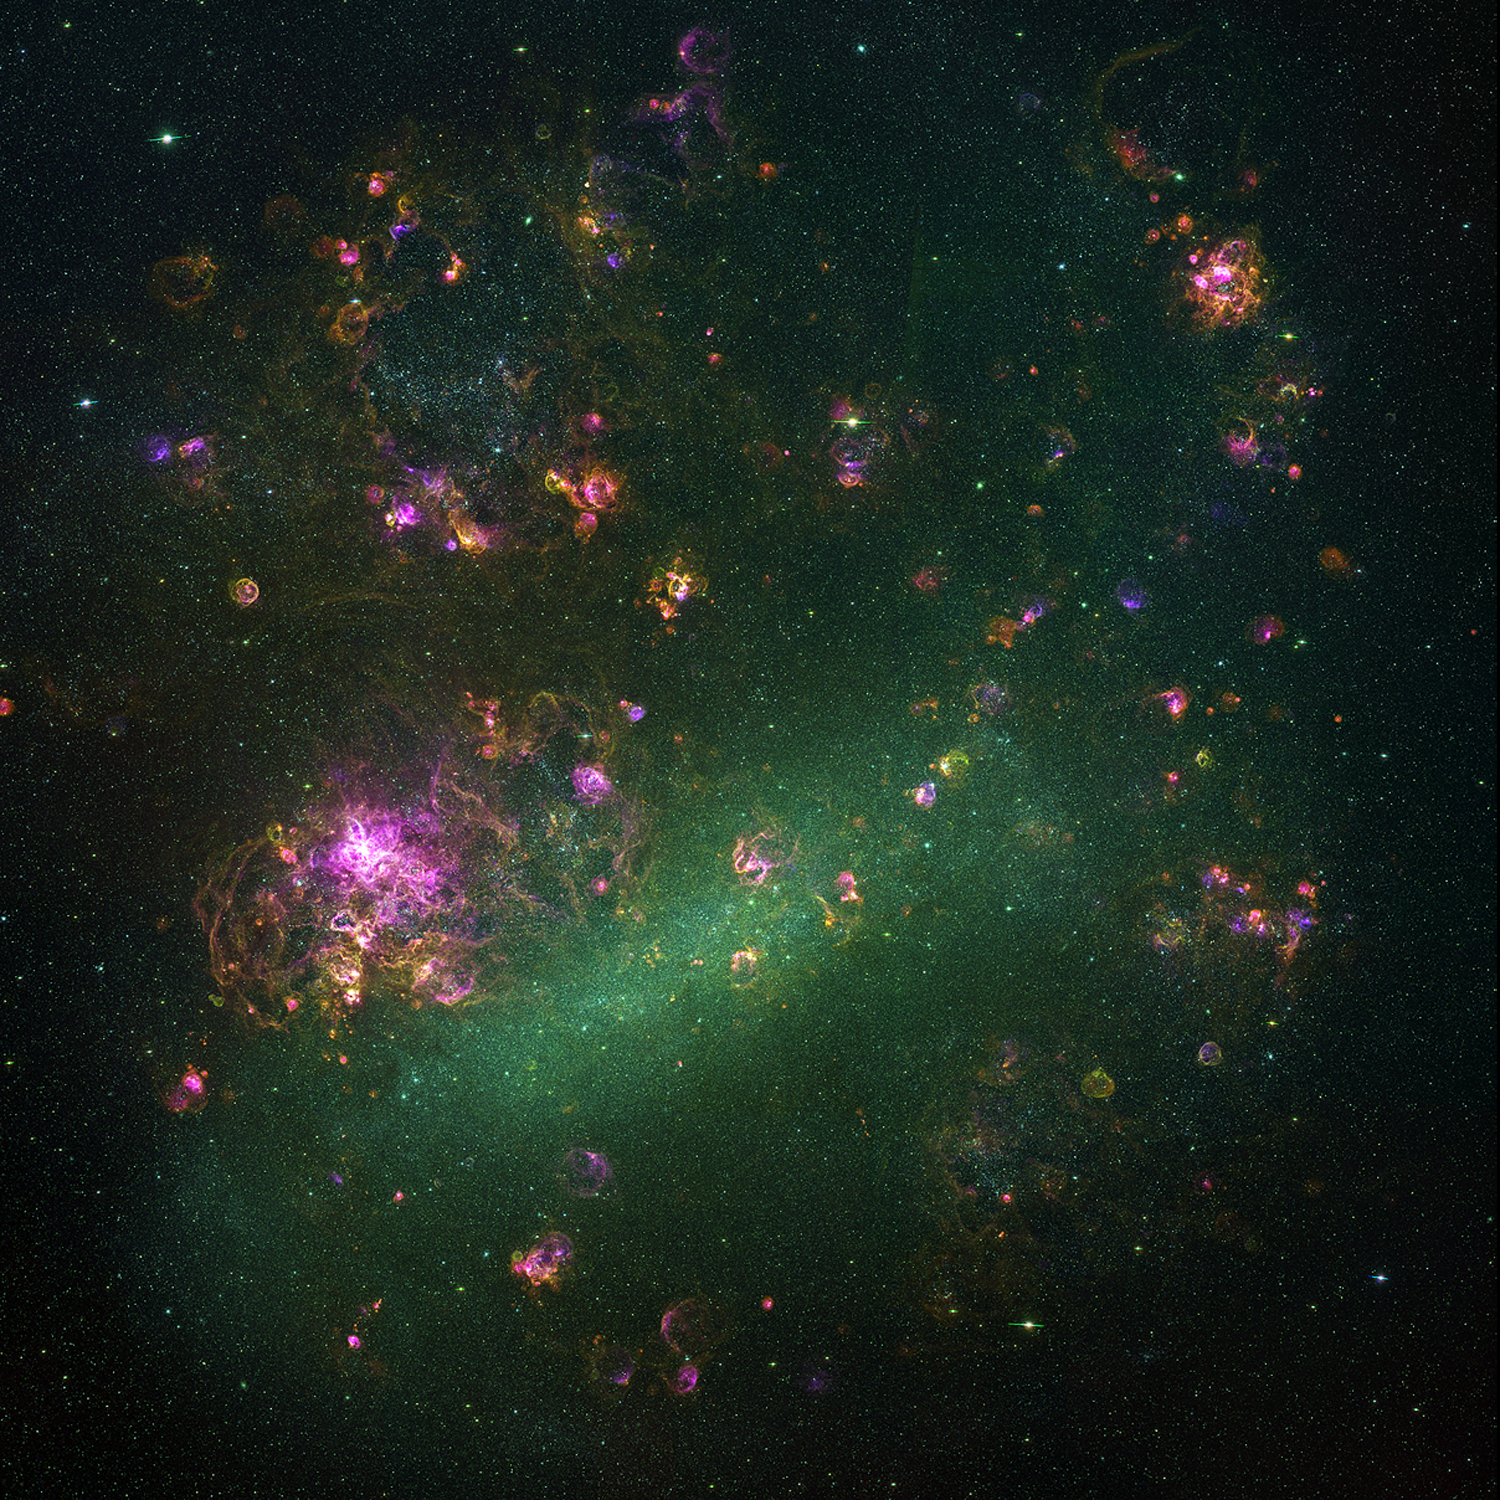 This mosaic of 1,500 images highlights glowing gas clouds in the Large Magellanic Cloud, a galaxy that orbits our own